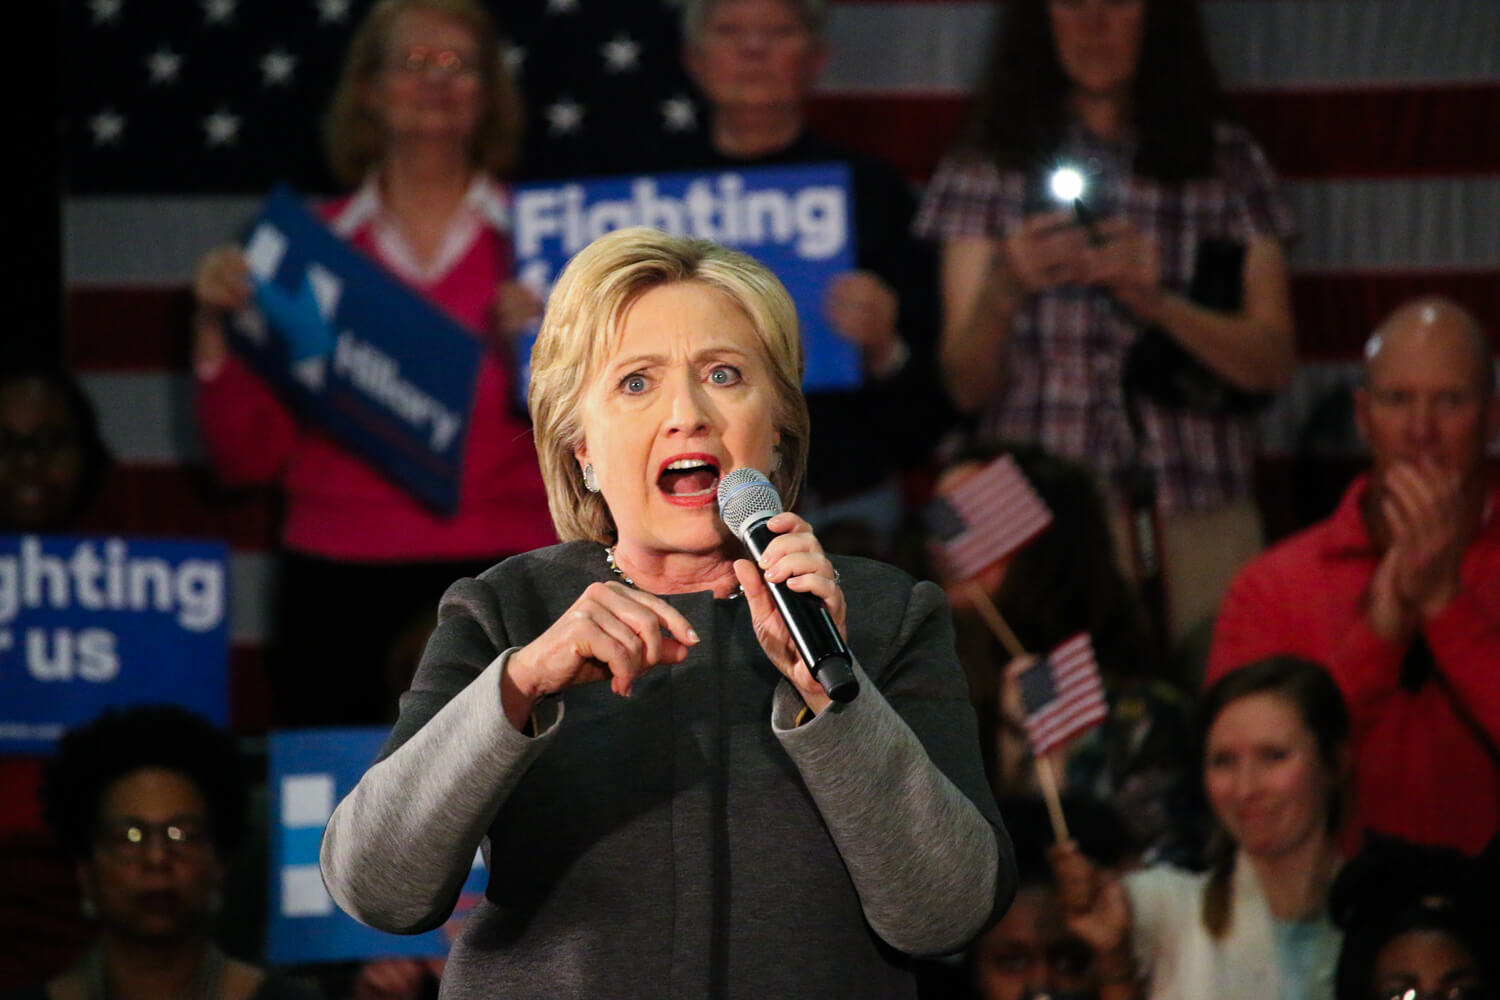 Has Sanders pushed Clinton to the left on energy issues?